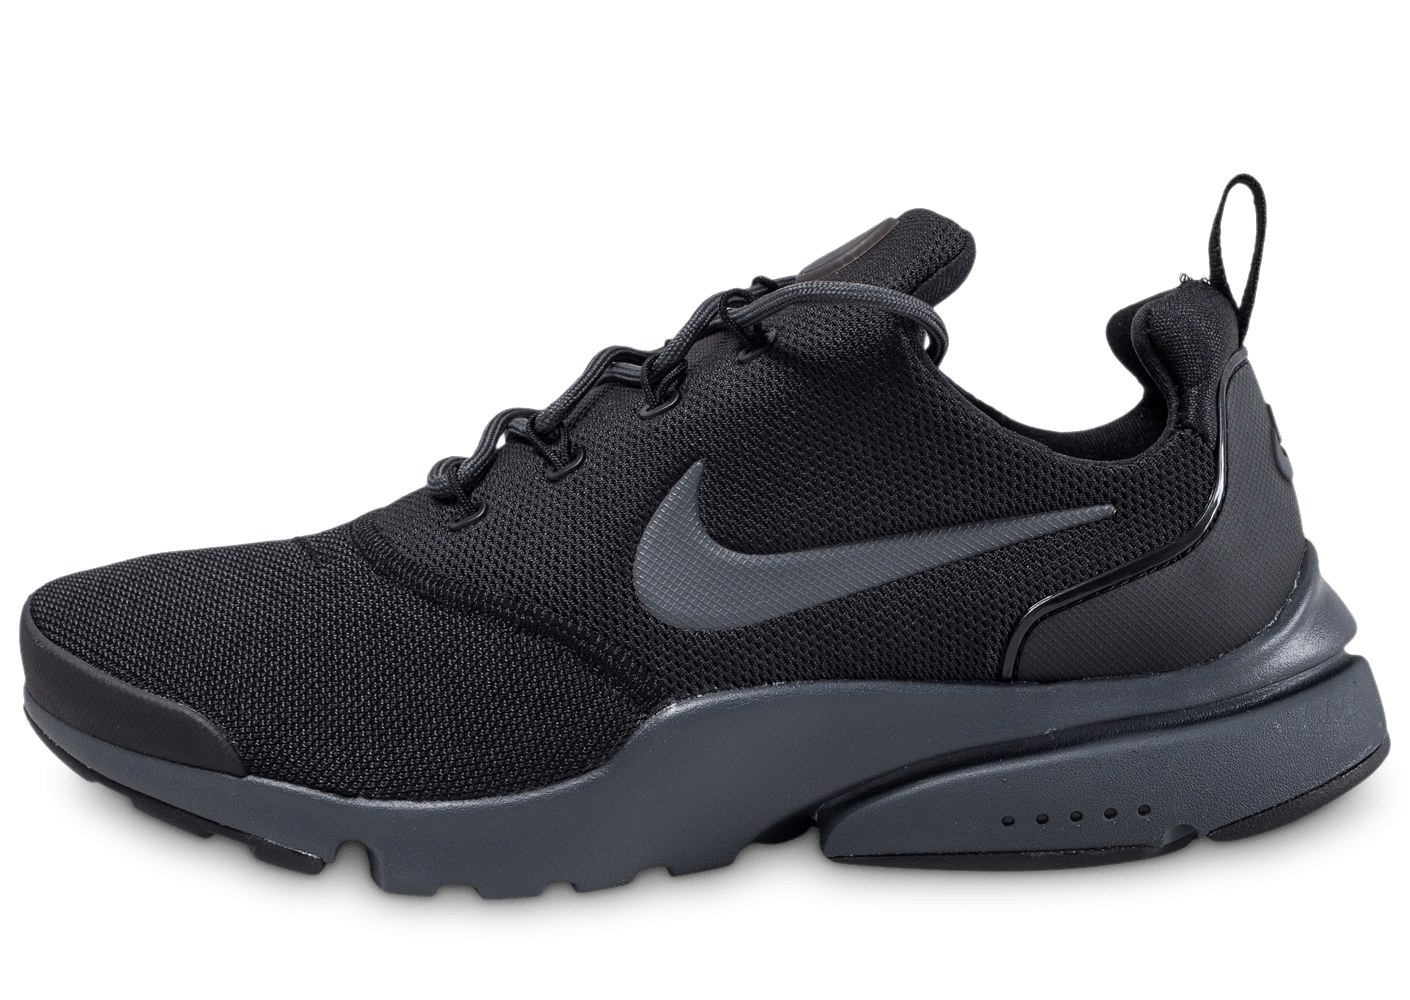 nike presto fly noire anthracite chaussures baskets homme chausport. Black Bedroom Furniture Sets. Home Design Ideas